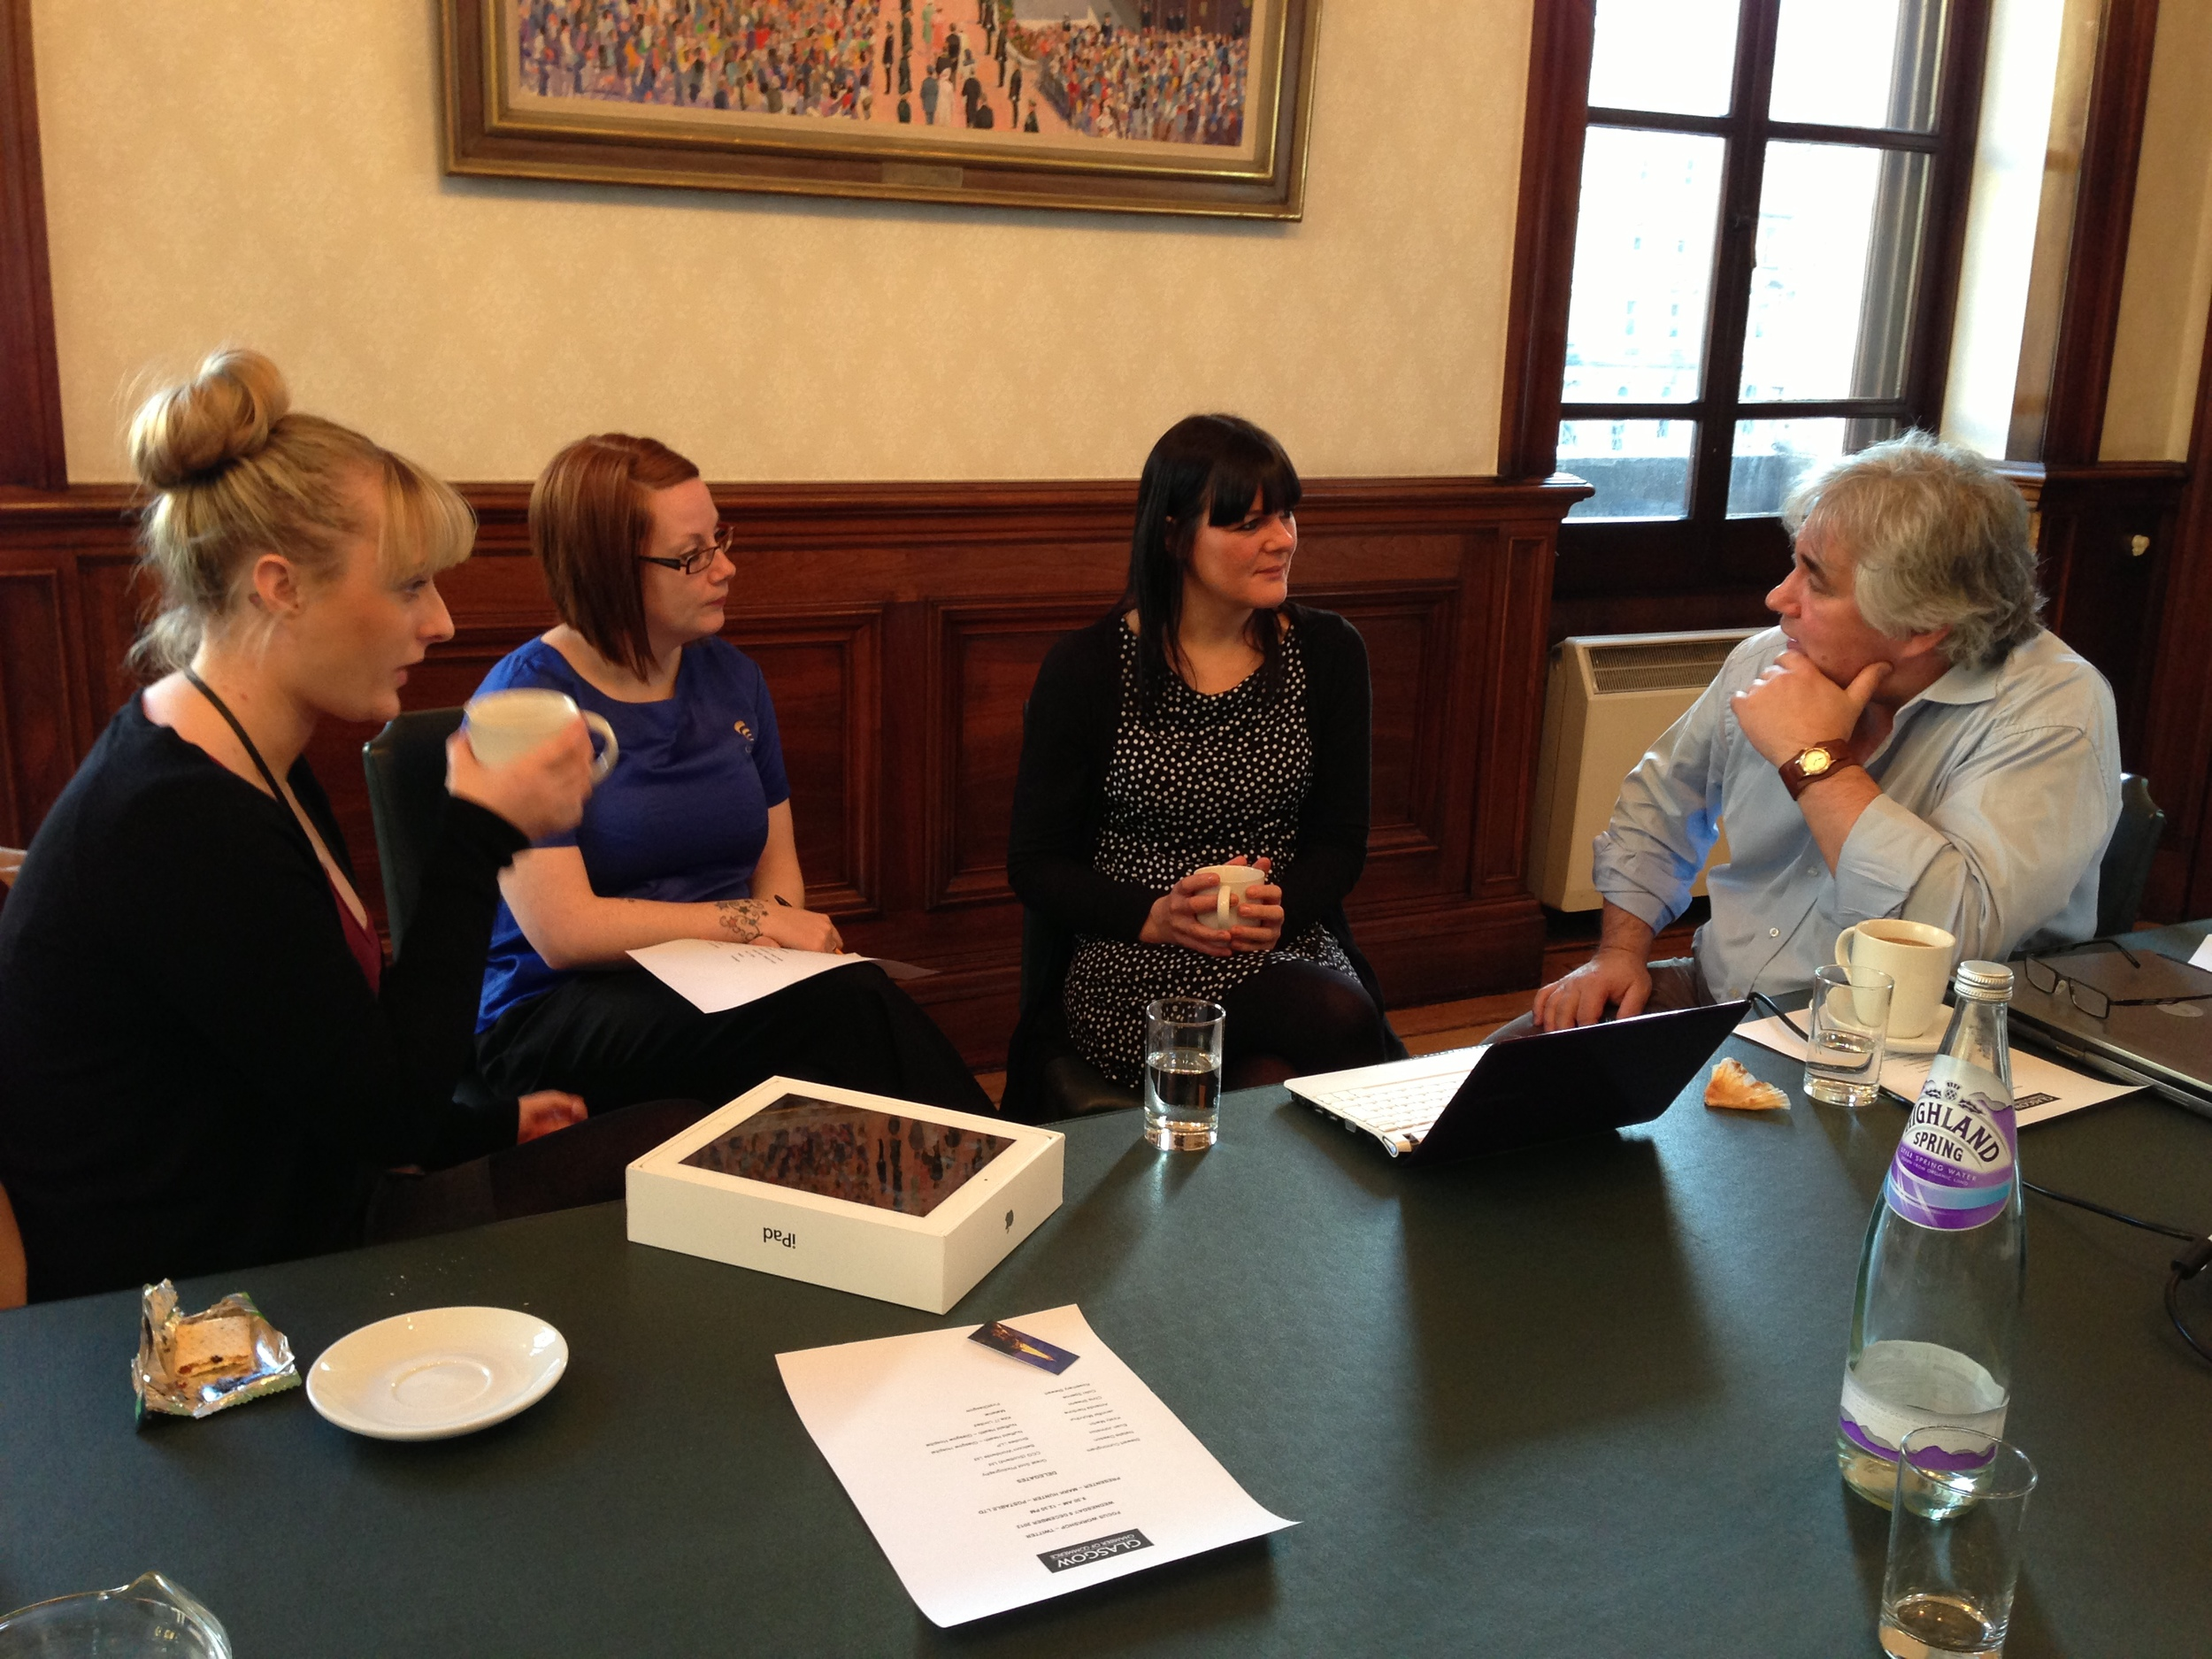 Focus on Twitter hands-on training session for Glasgow Chamber of Commerce